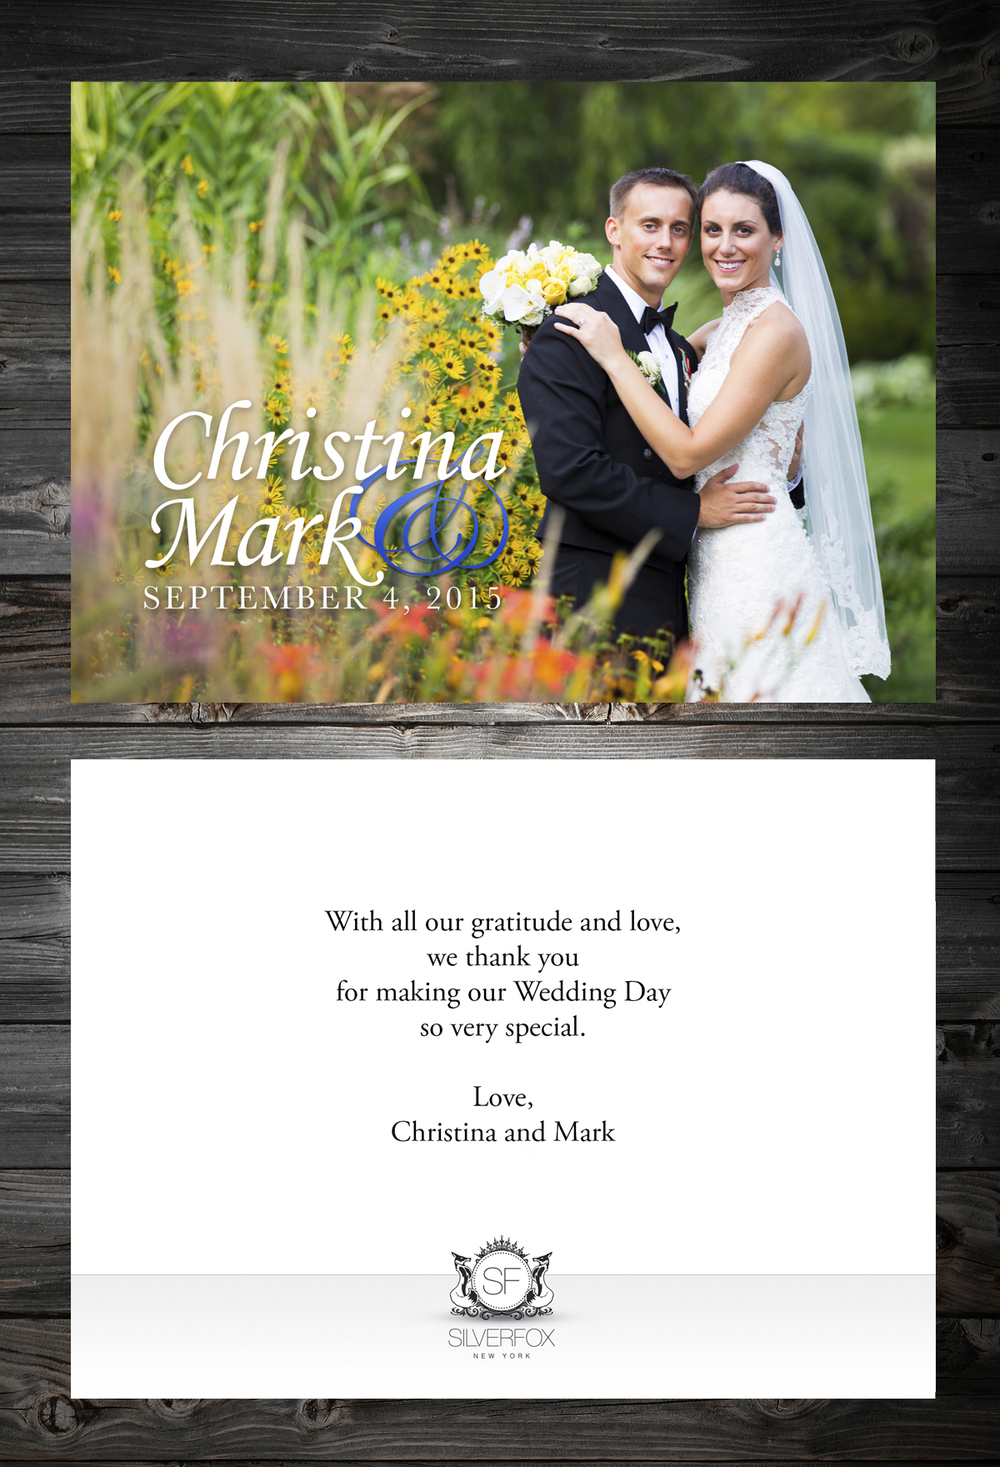 An example of our in-house thank you card designs, custom made for each couple.